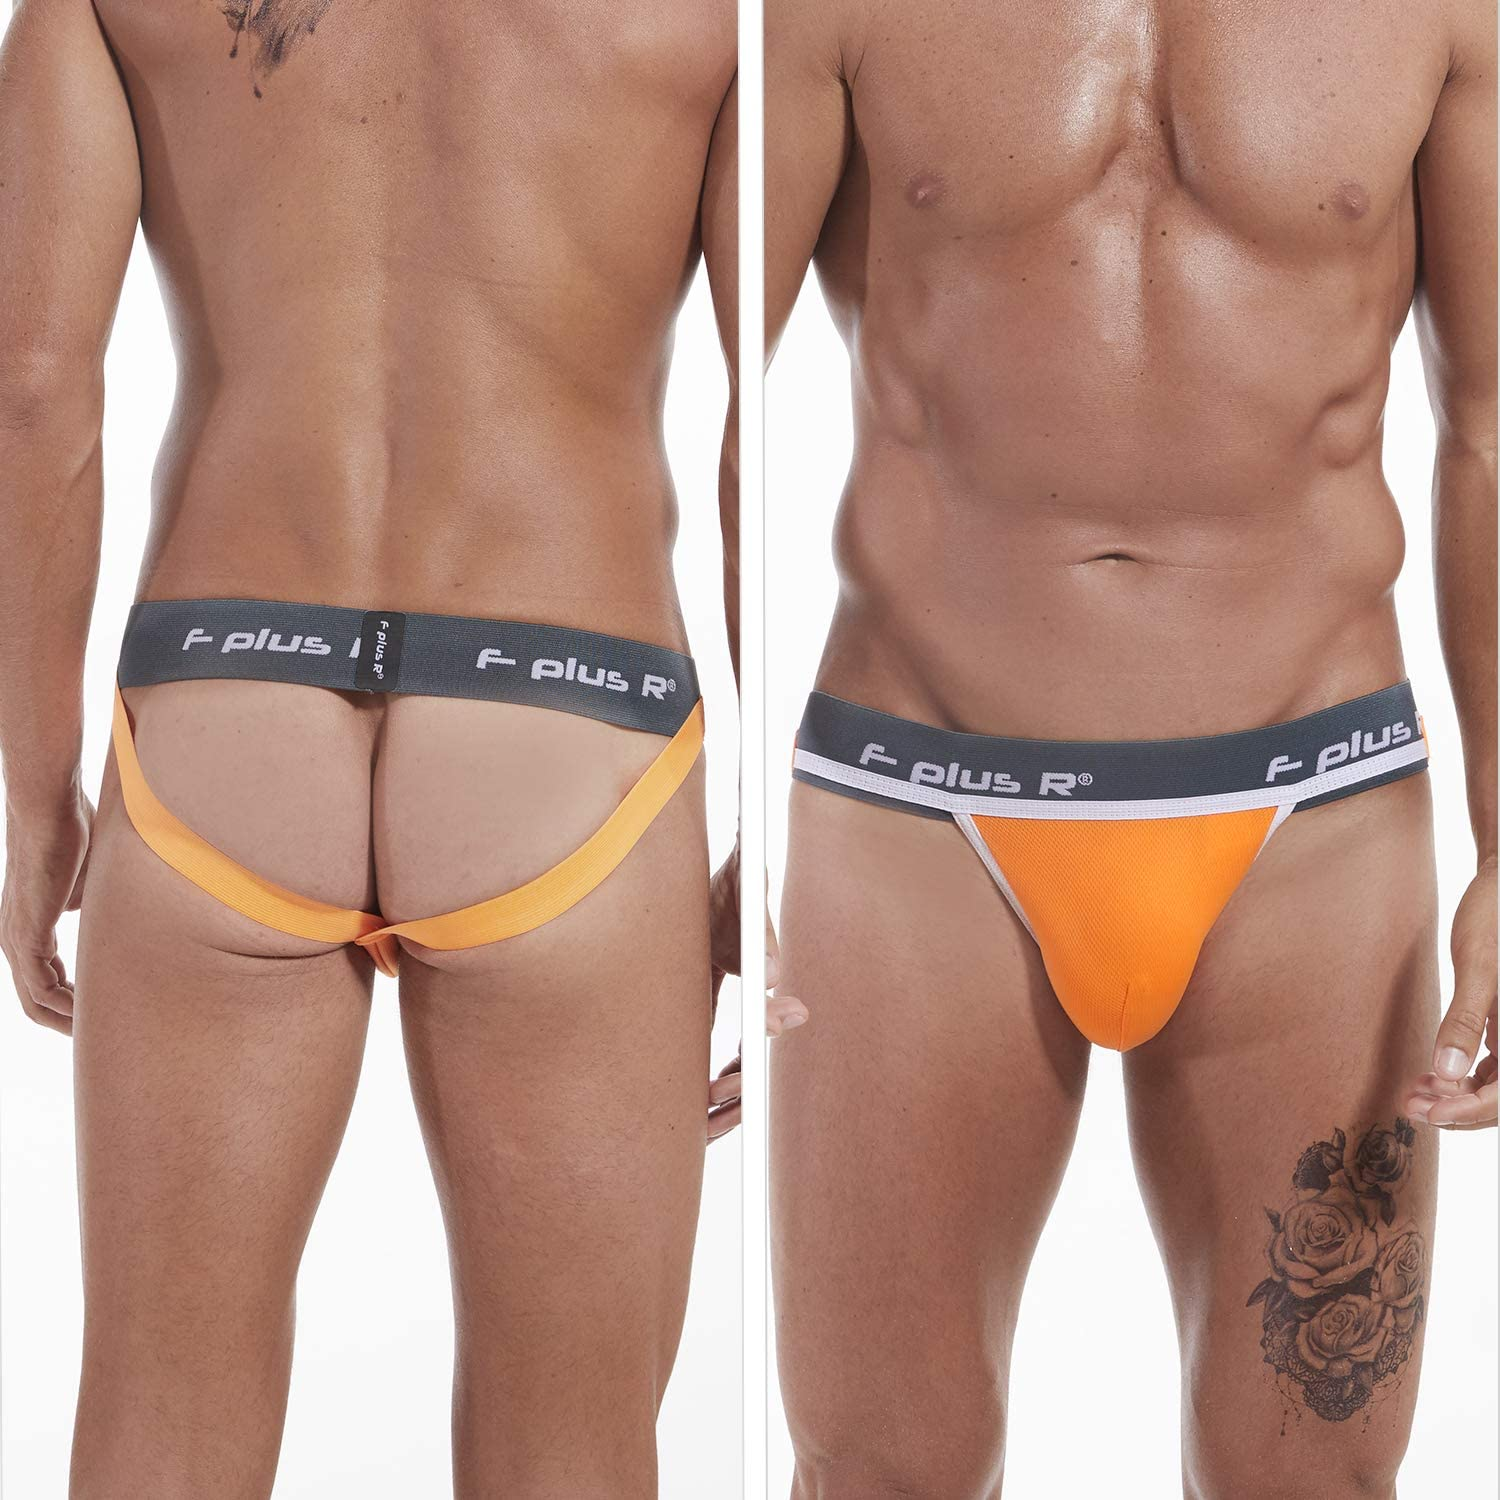 F plus R Mens Athletic Supporter Jockstrap with Cup Pocket 2 Inch Waistband